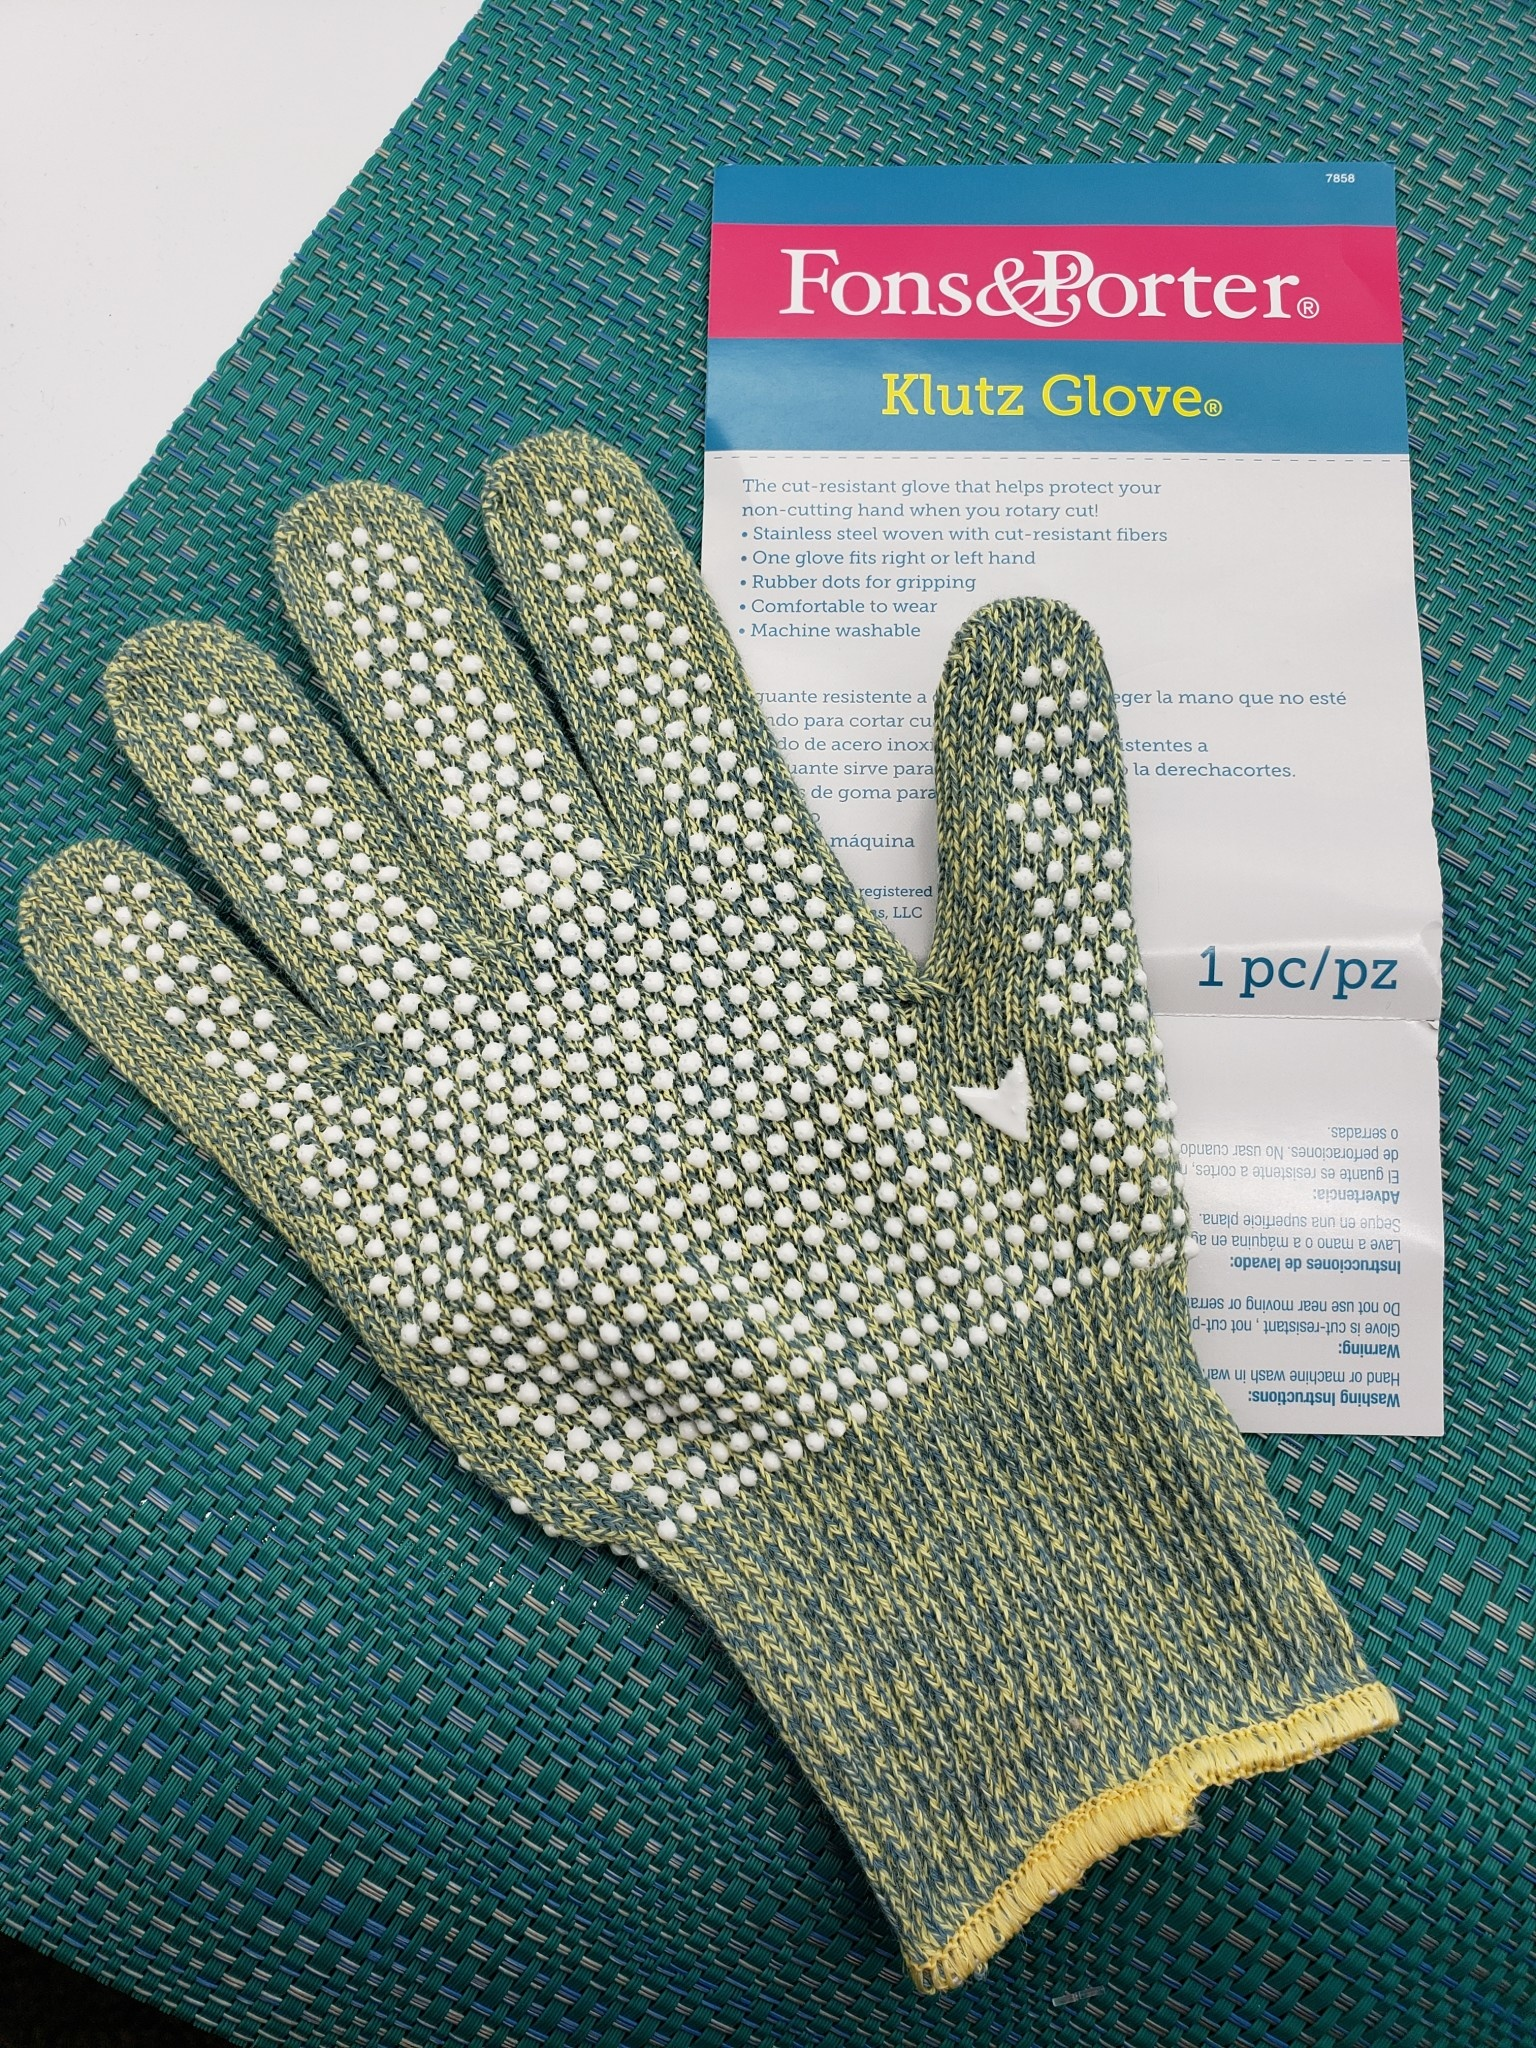 FONS & PORTER KLUTZ GLOVE (SAFE ROTARY CUTTING) MEDIUM